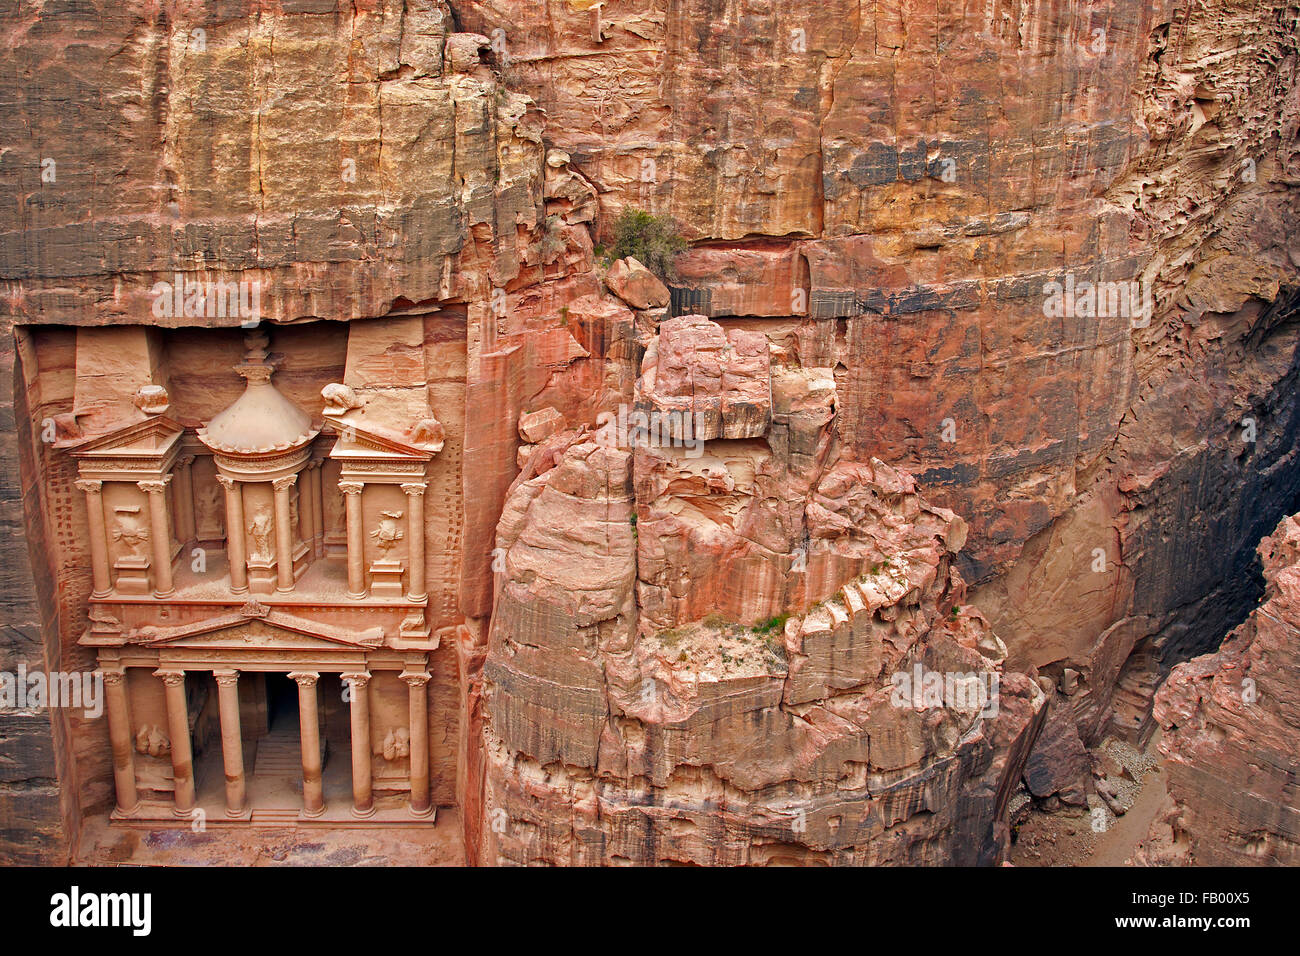 Al Khazneh / The Treasury, carved out of a sandstone rock ...